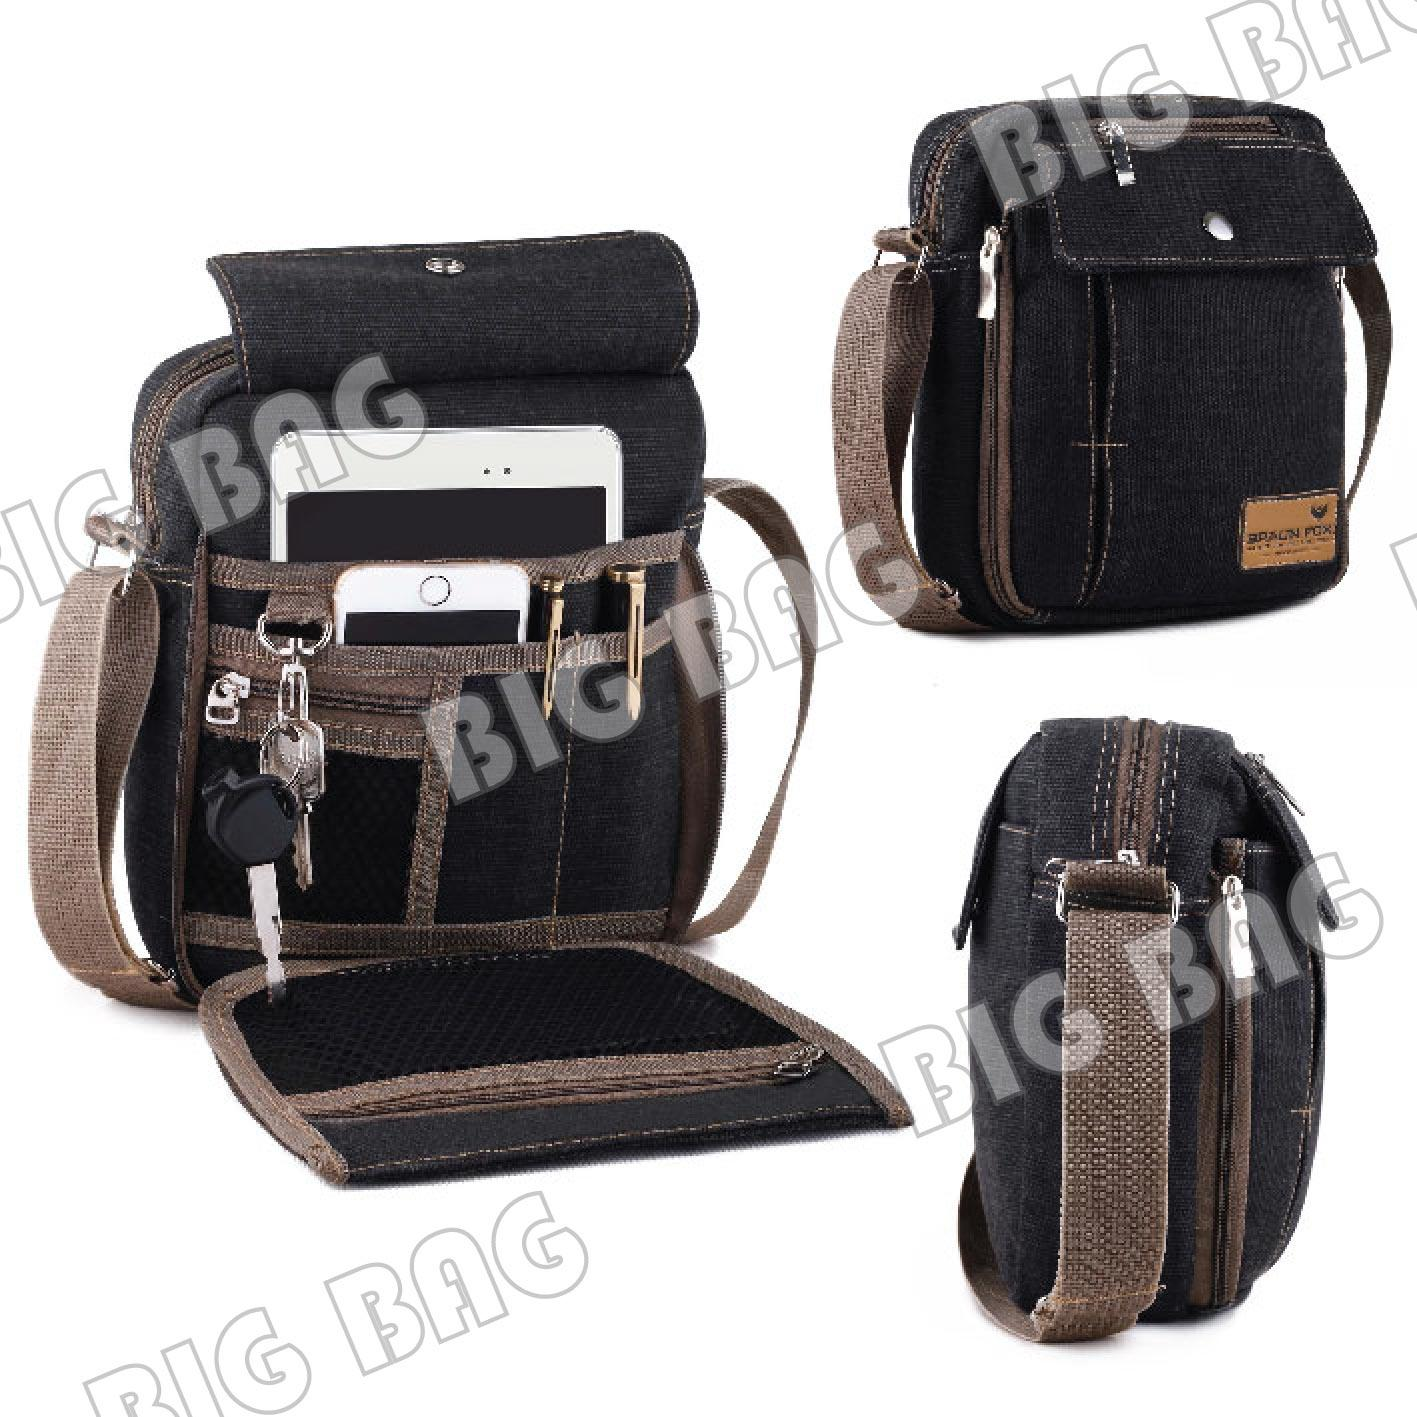 Tas Selempang Pria / Wanita Kanvas Braun Fox Canvas Multifunction Shoulder Bag BP-05 -